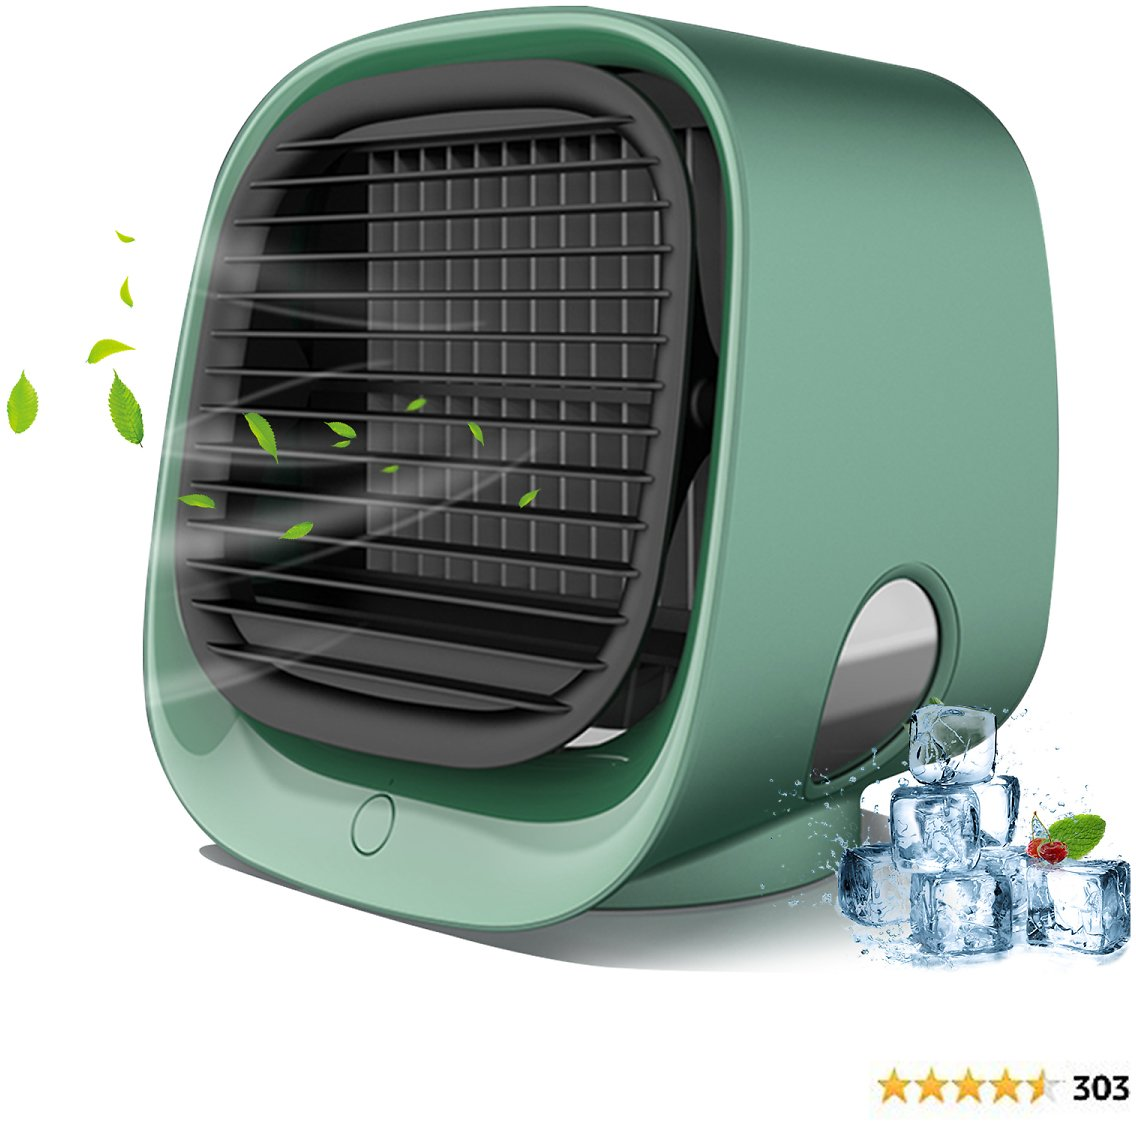 SeaTop Portable Air Conditioner, Mini Personal Evaporative Air Cooler, Super Quiet Desk Small AC Unit with 7 Colors LED Light, USB 3 Speeds Fan for Office Room Bedroom